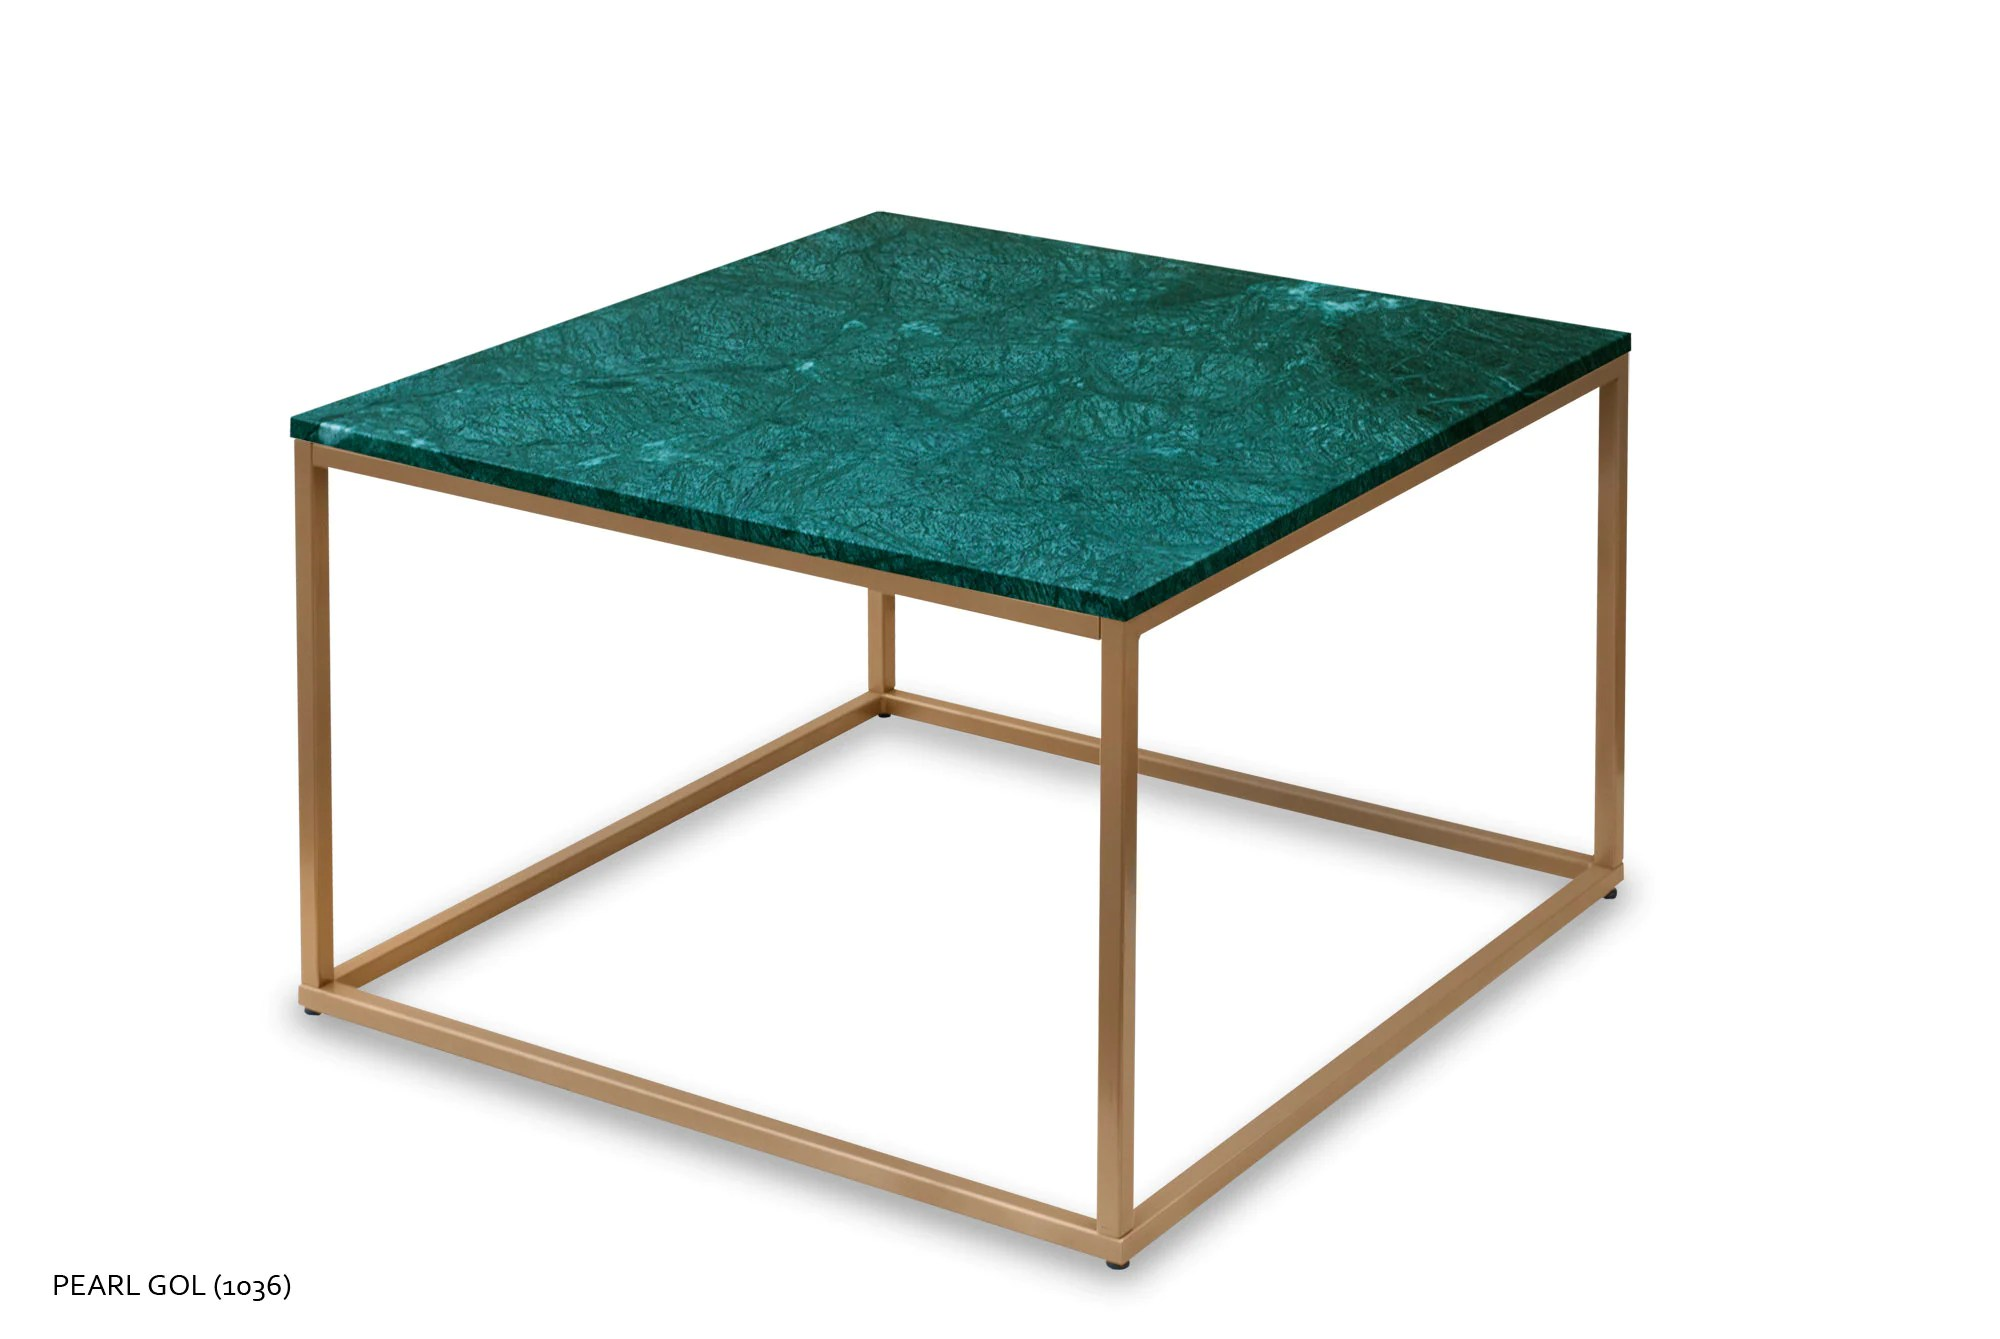 Fashion For Home Couchtisch Coffee Table Made To Order Square Green Marble Hand Made Marble Top Coffe Table For Living Room Fashion Home